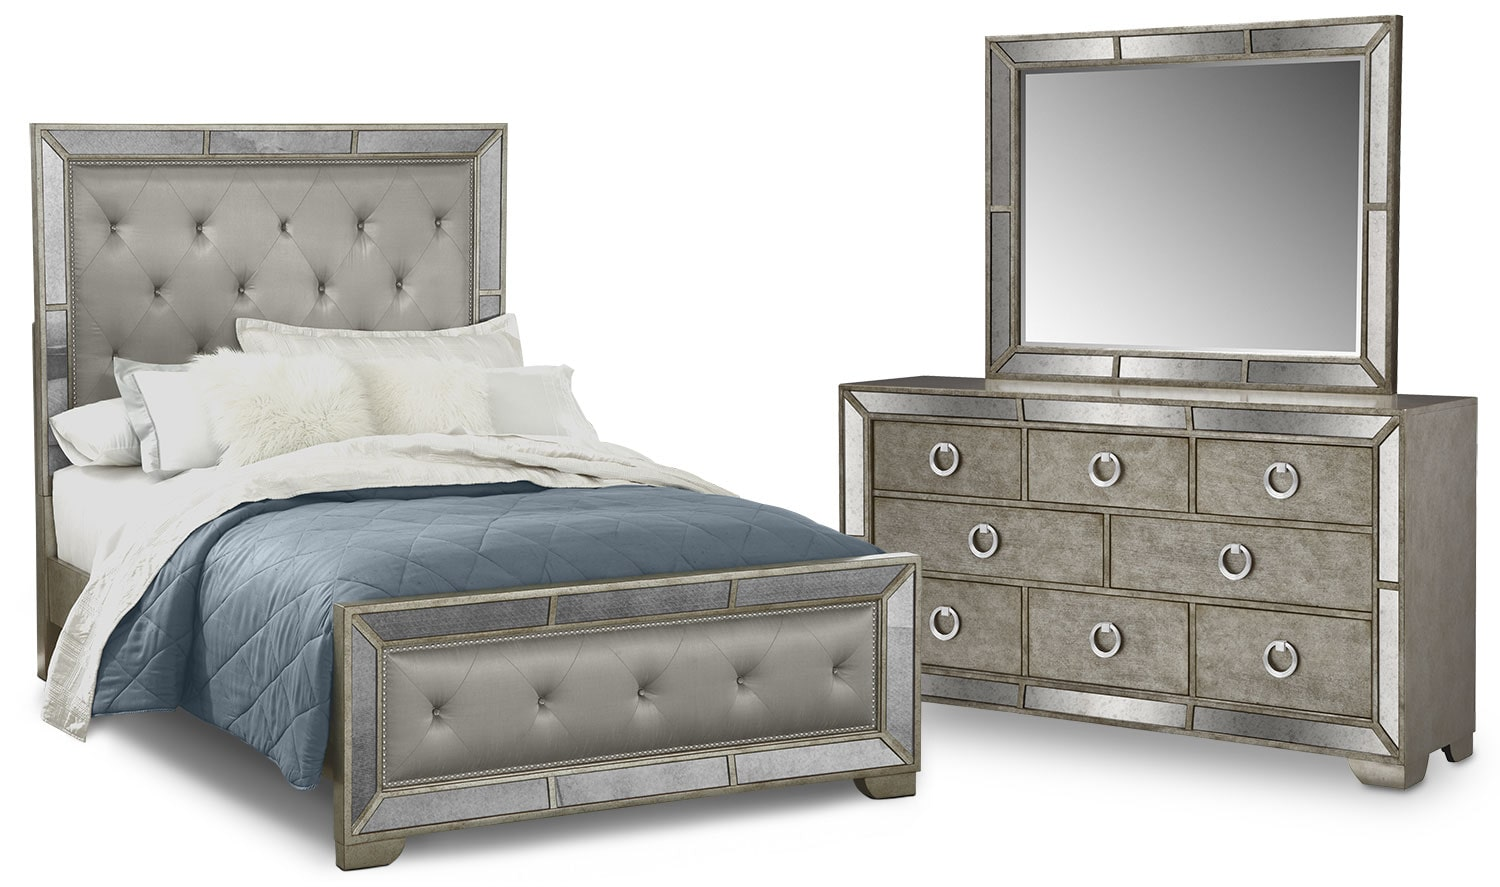 Bedroom Furniture - Angelina 5-Piece Upholstered Bedroom Set with Dresser and Mirror